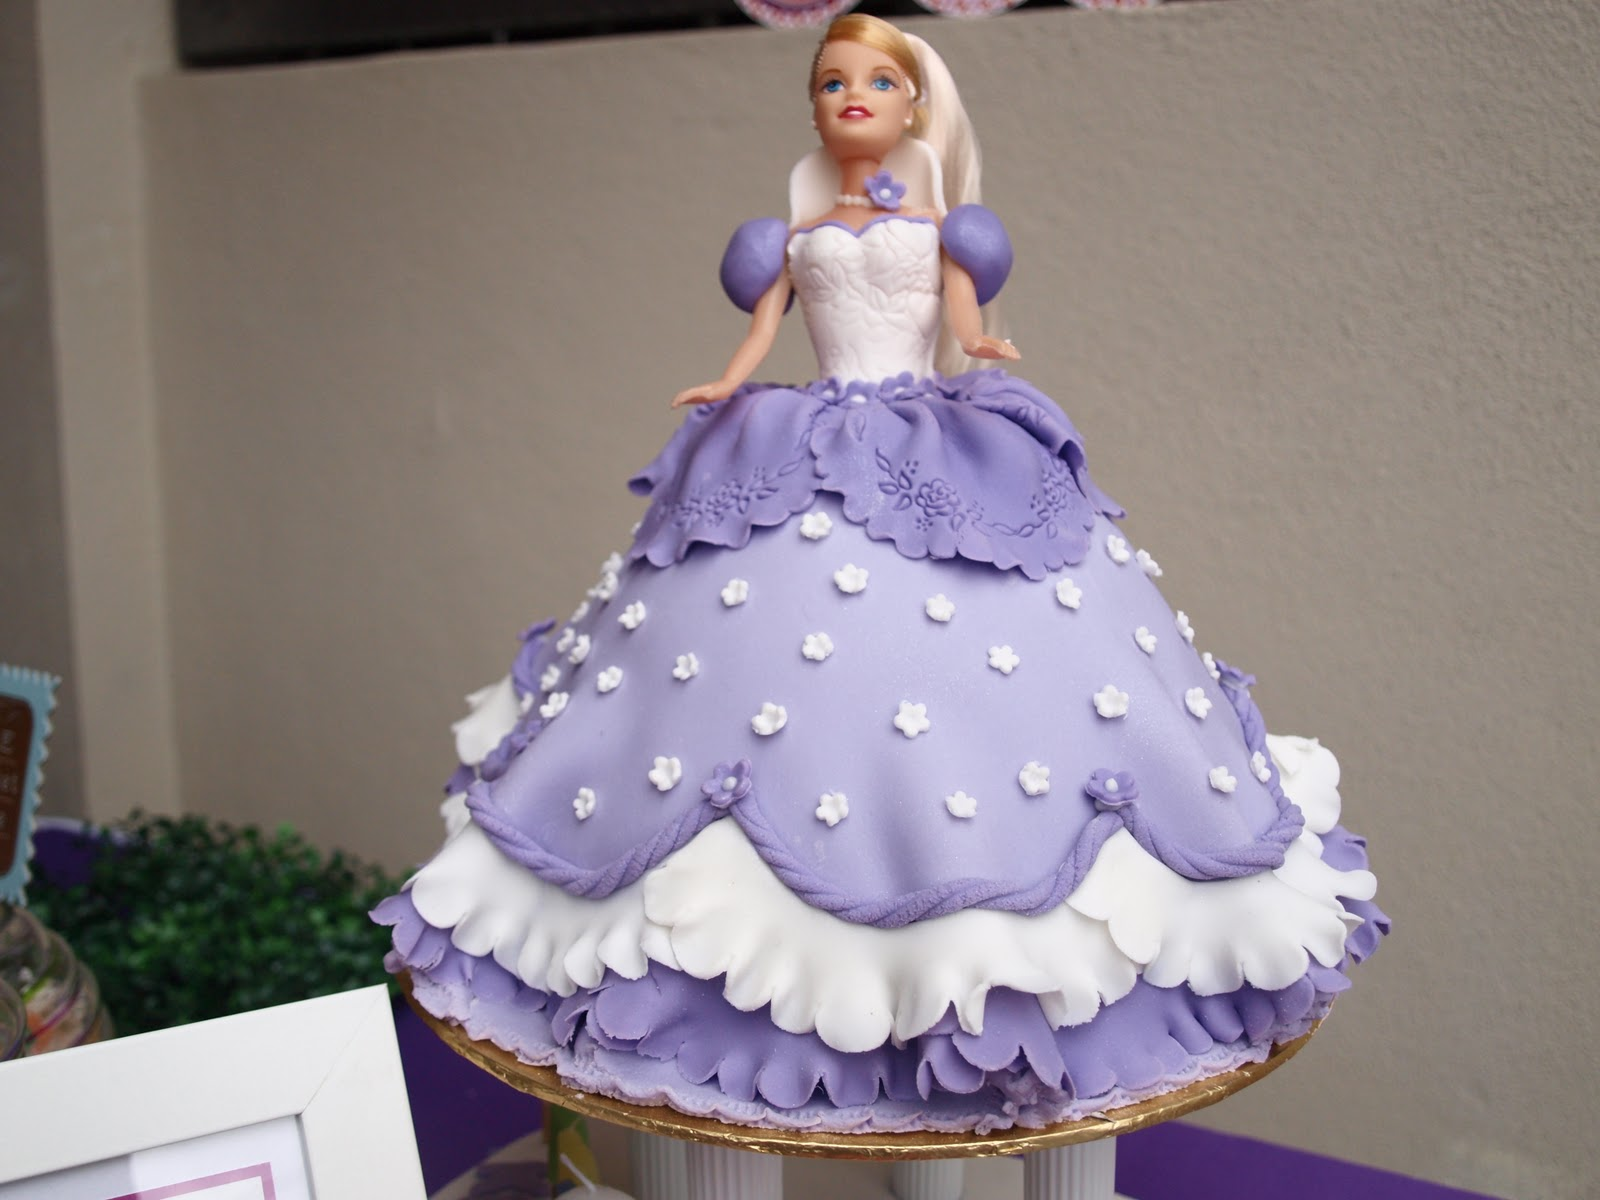 barbie doll cake decoration idea 2 Barbie Doll Cakes ...